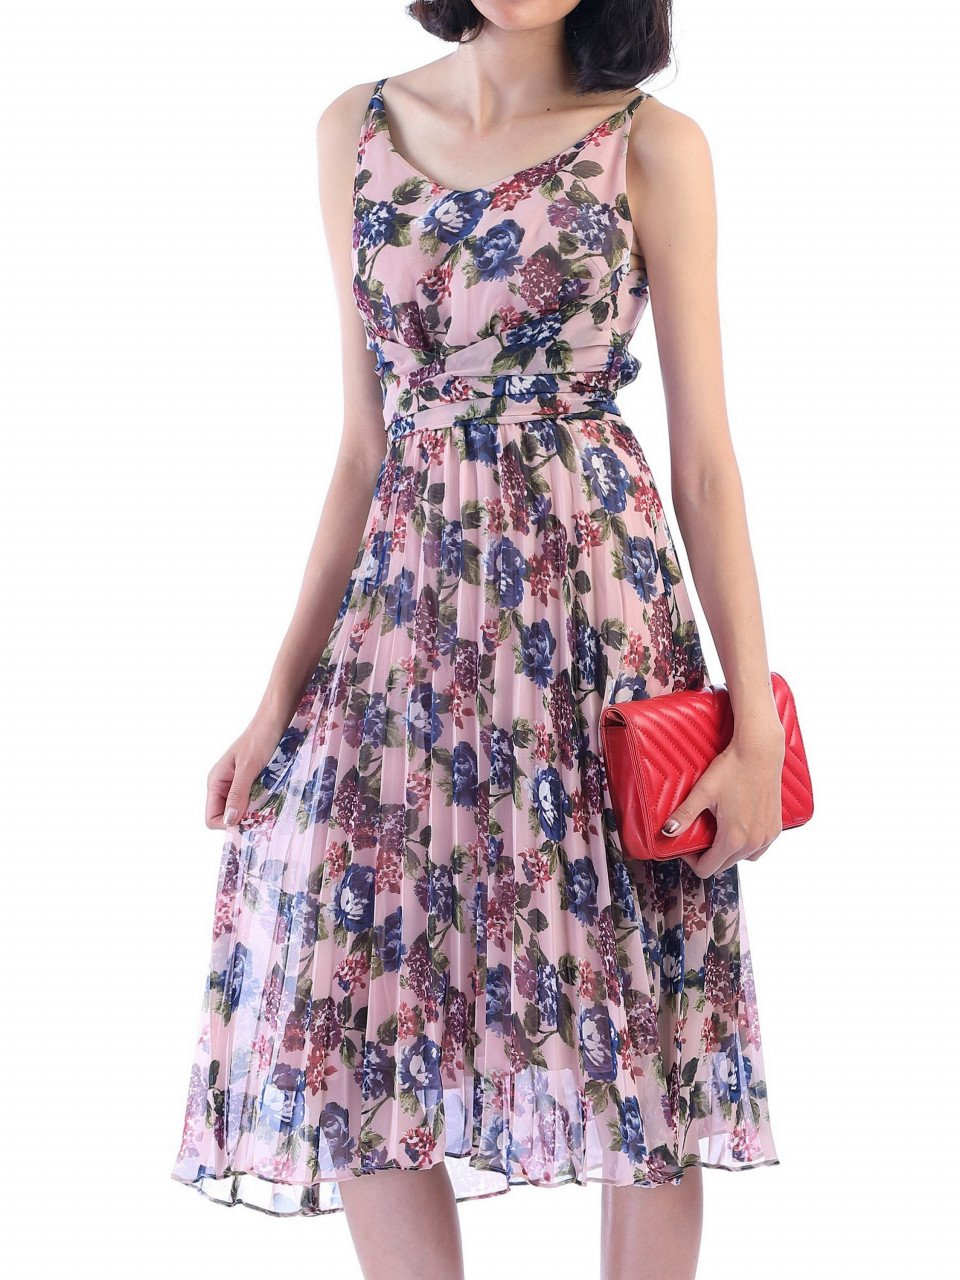 Jolie Moi Strappy Floral Pleated Summer Dress, Pink Floral